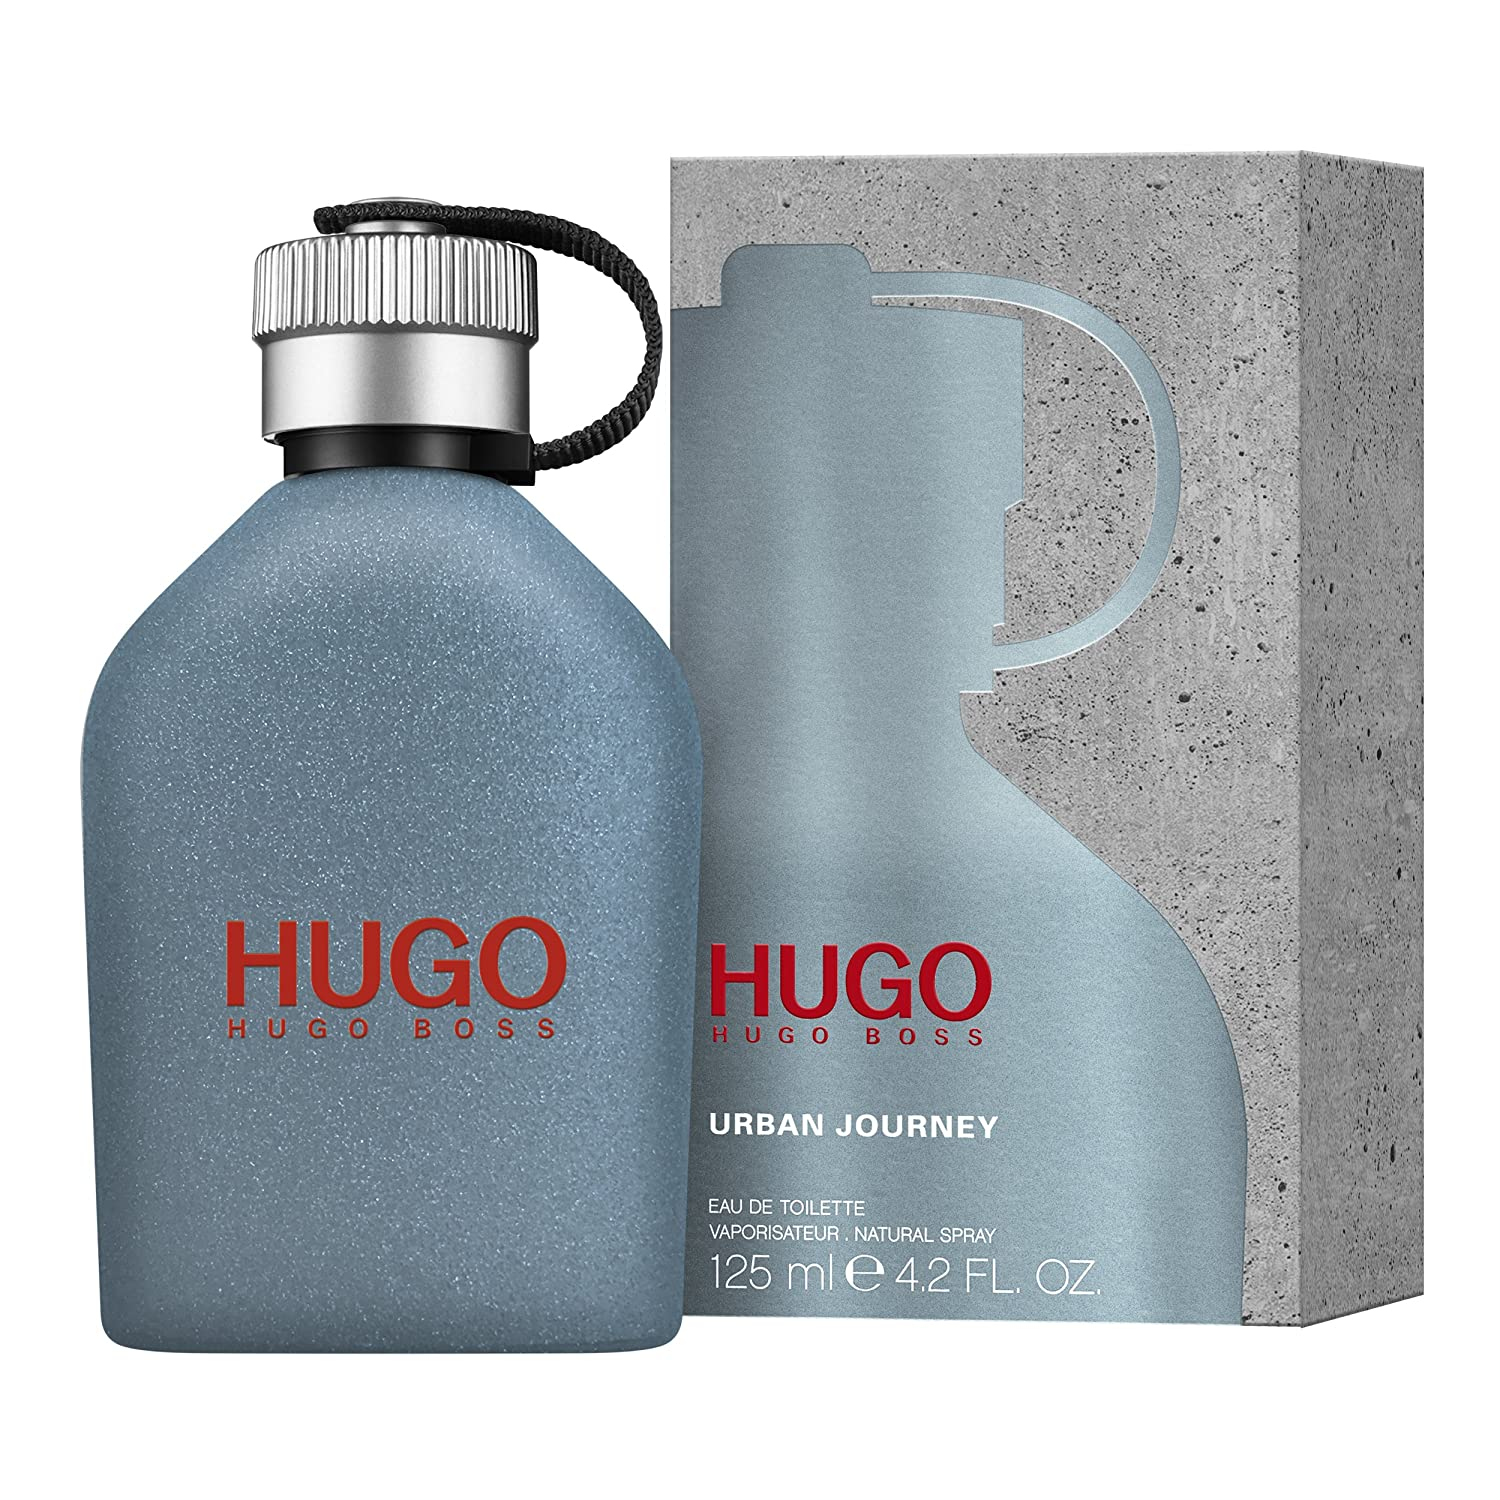 Amazon.com: Hugo Boss Urban Journey Eau de Toilette Spray, 4.2 fl. oz.: Luxury Beauty